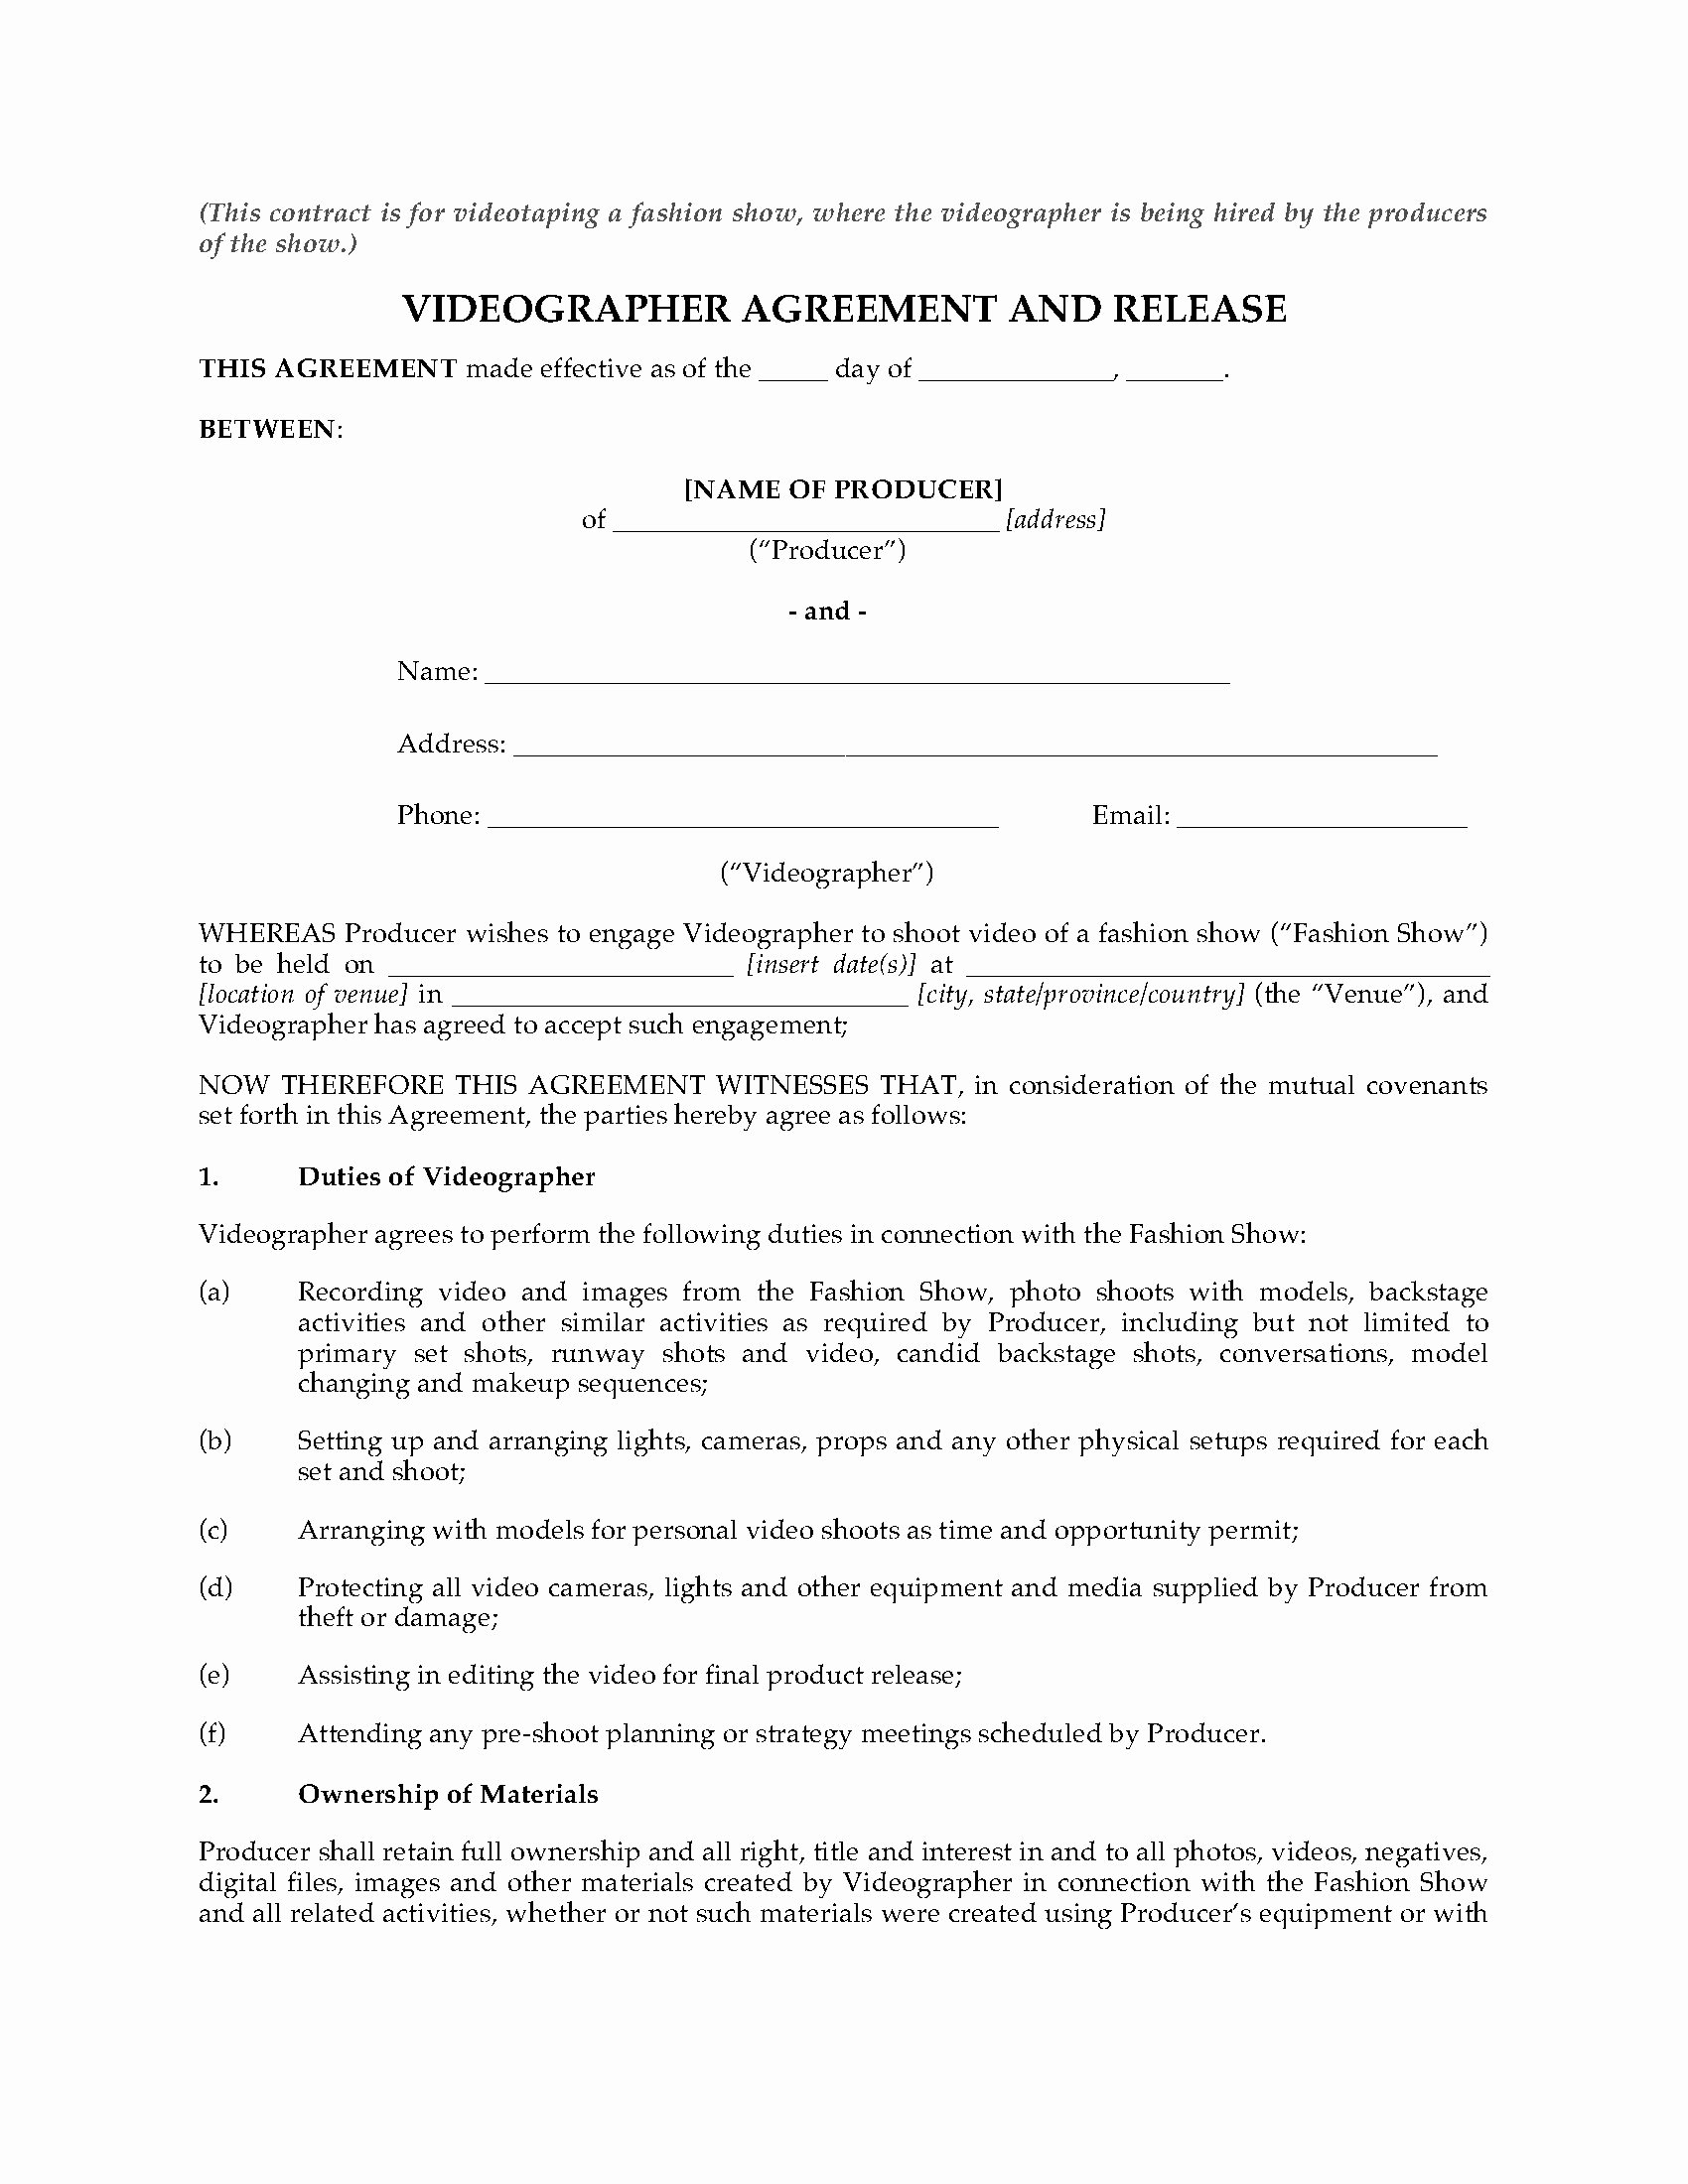 Wedding Videographer Contract Template Fresh Videography Agreement for Fashion Show